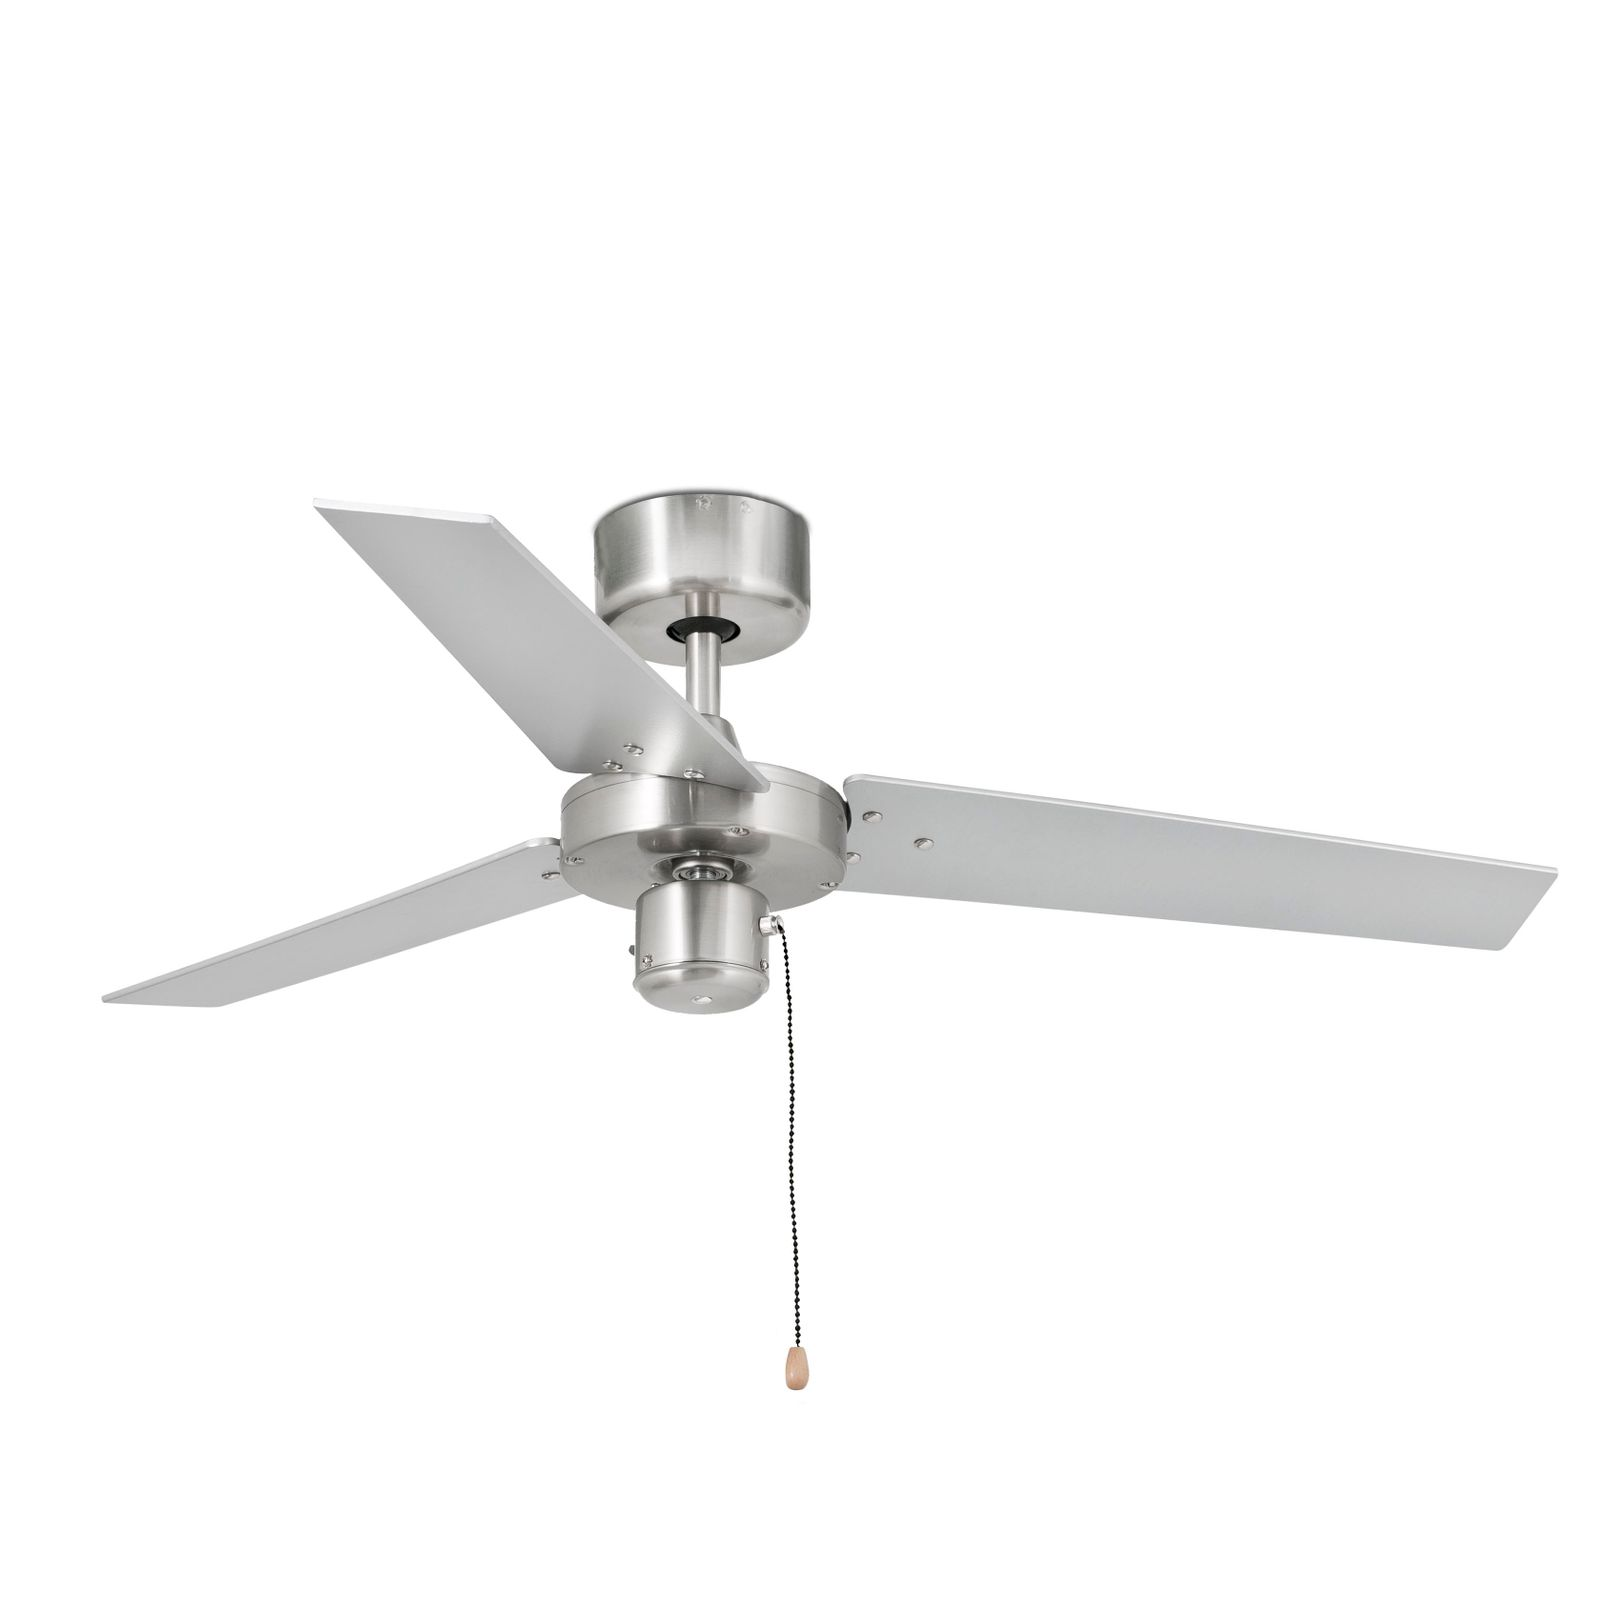 Ceiling Fans With Electrical Cords : Faro ceiling fan factory cm quot with pull cord